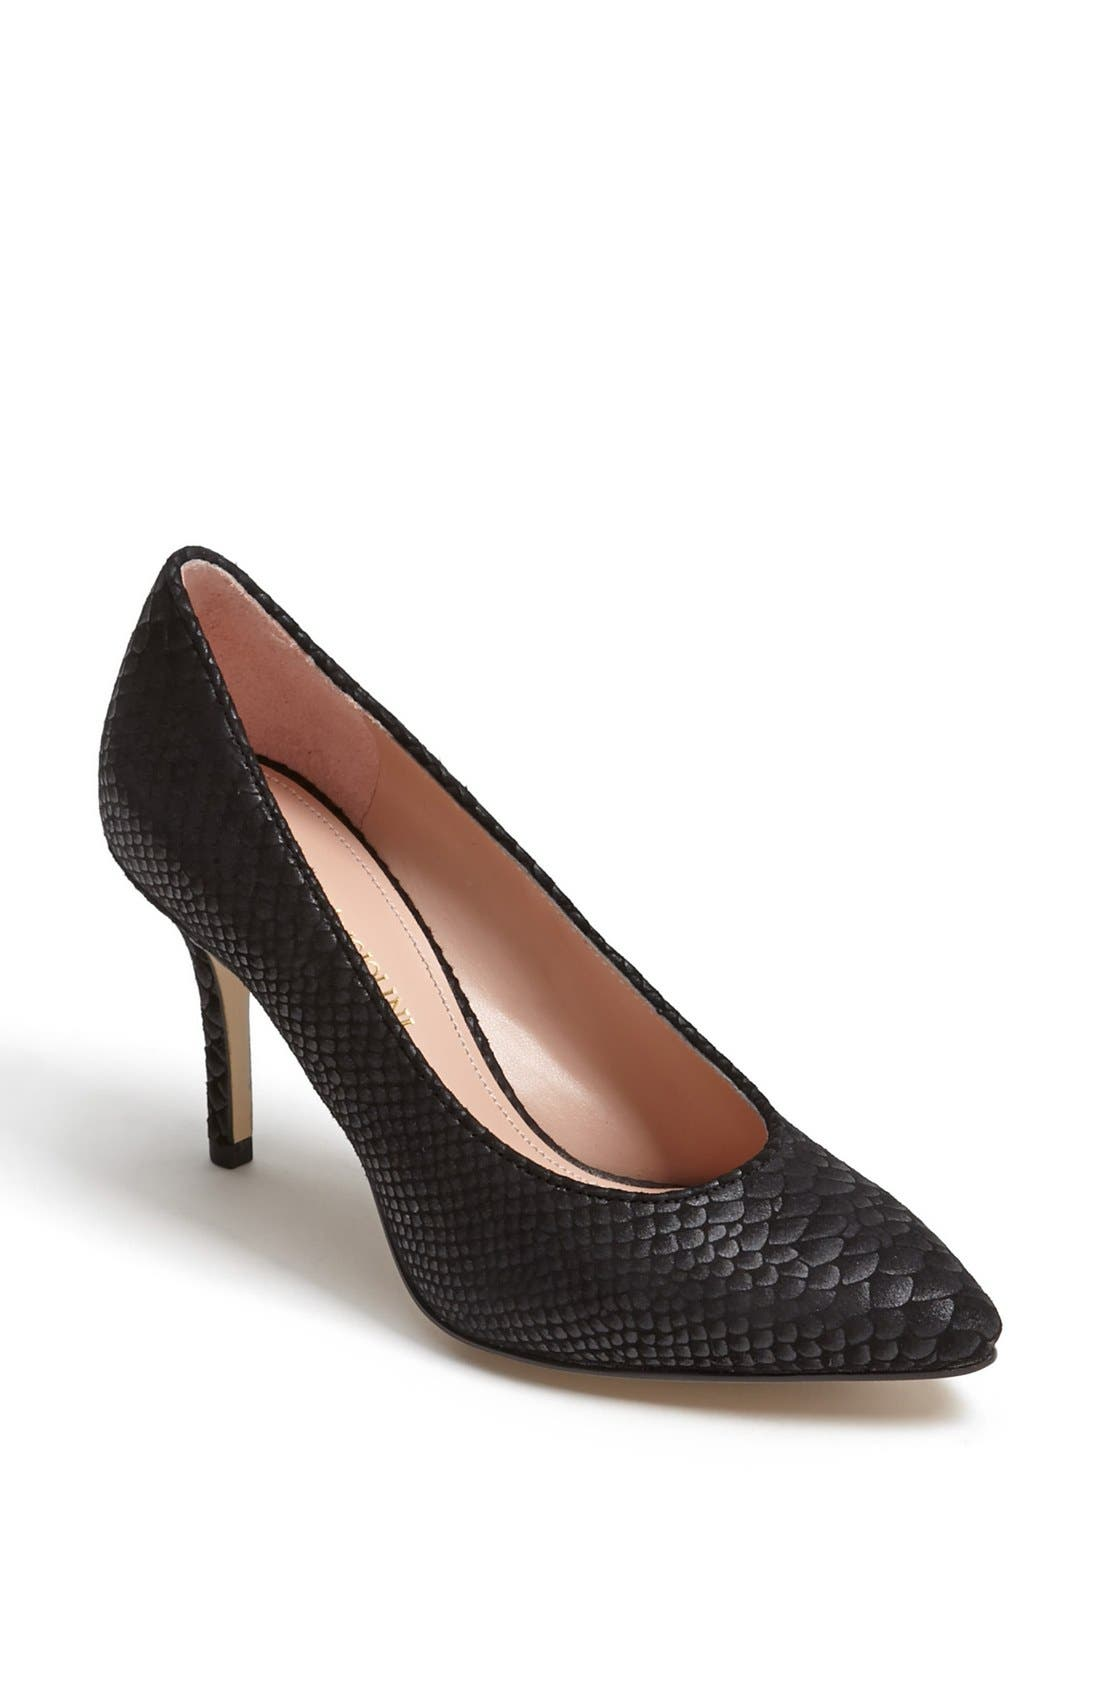 Alternate Image 1 Selected - Enzo Angiolini 'Cheylo' Pump